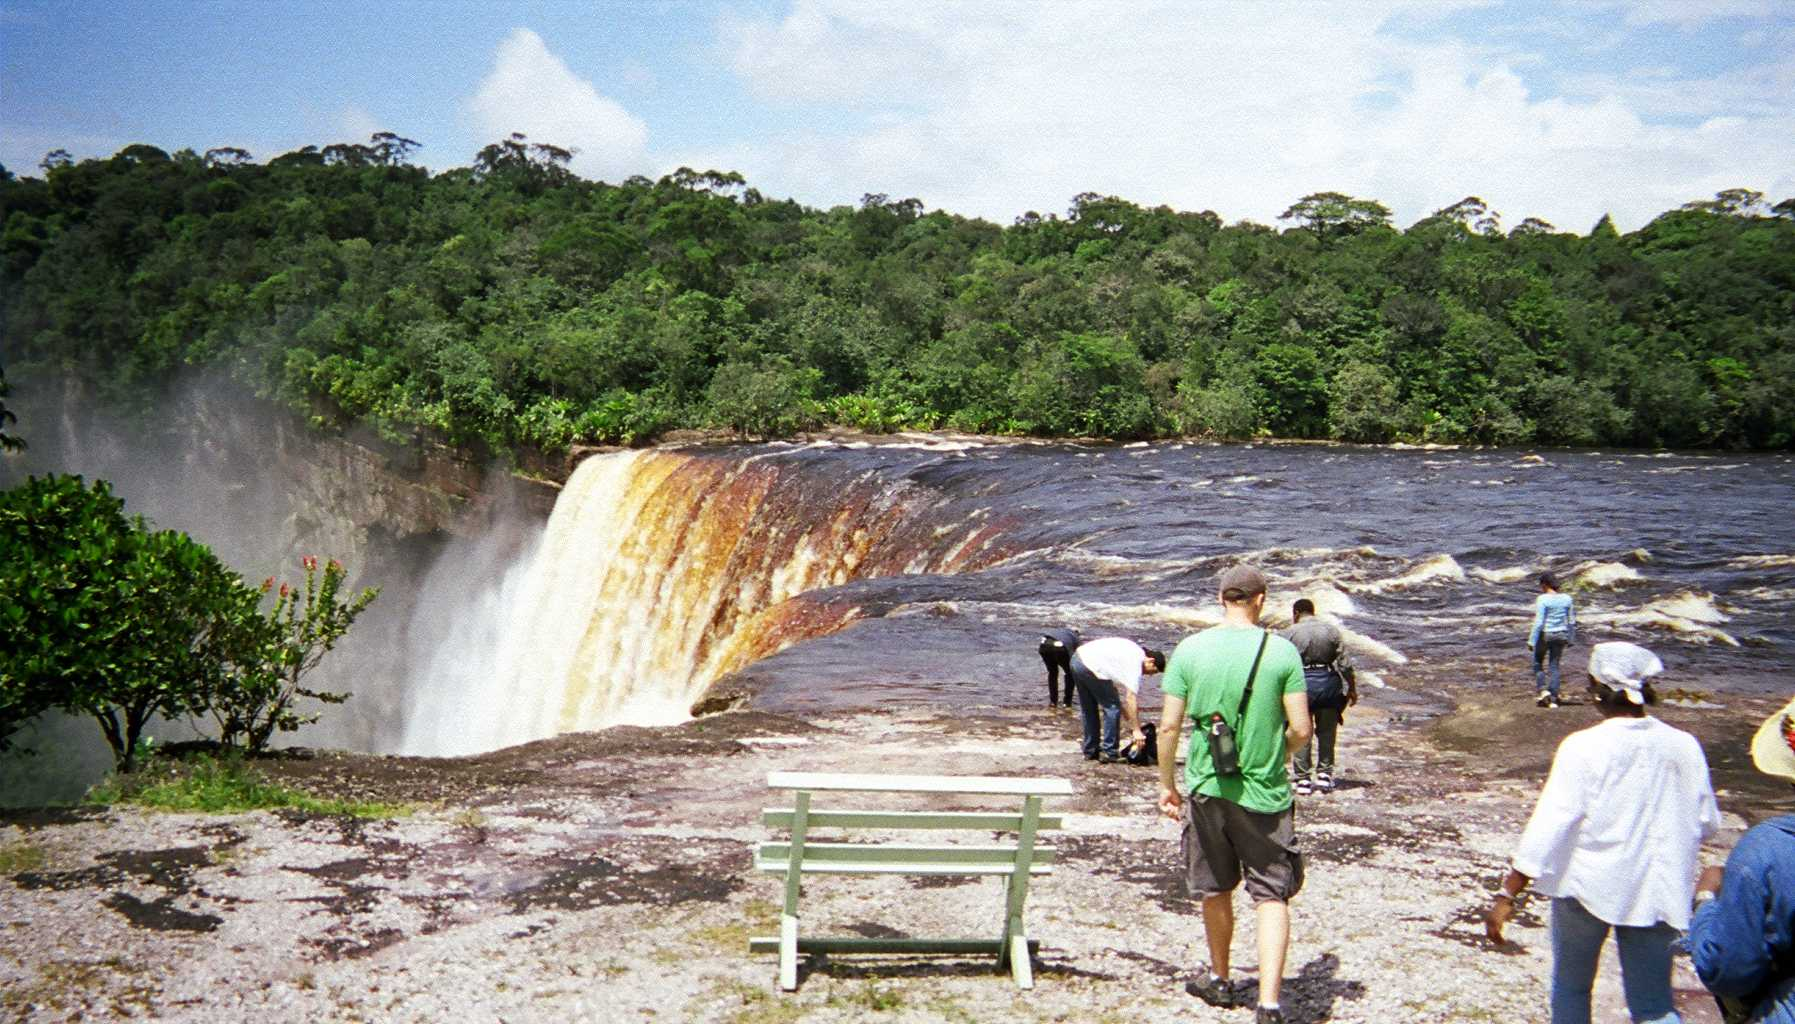 The Only South American Country Where English Is The Official language - Guyana!